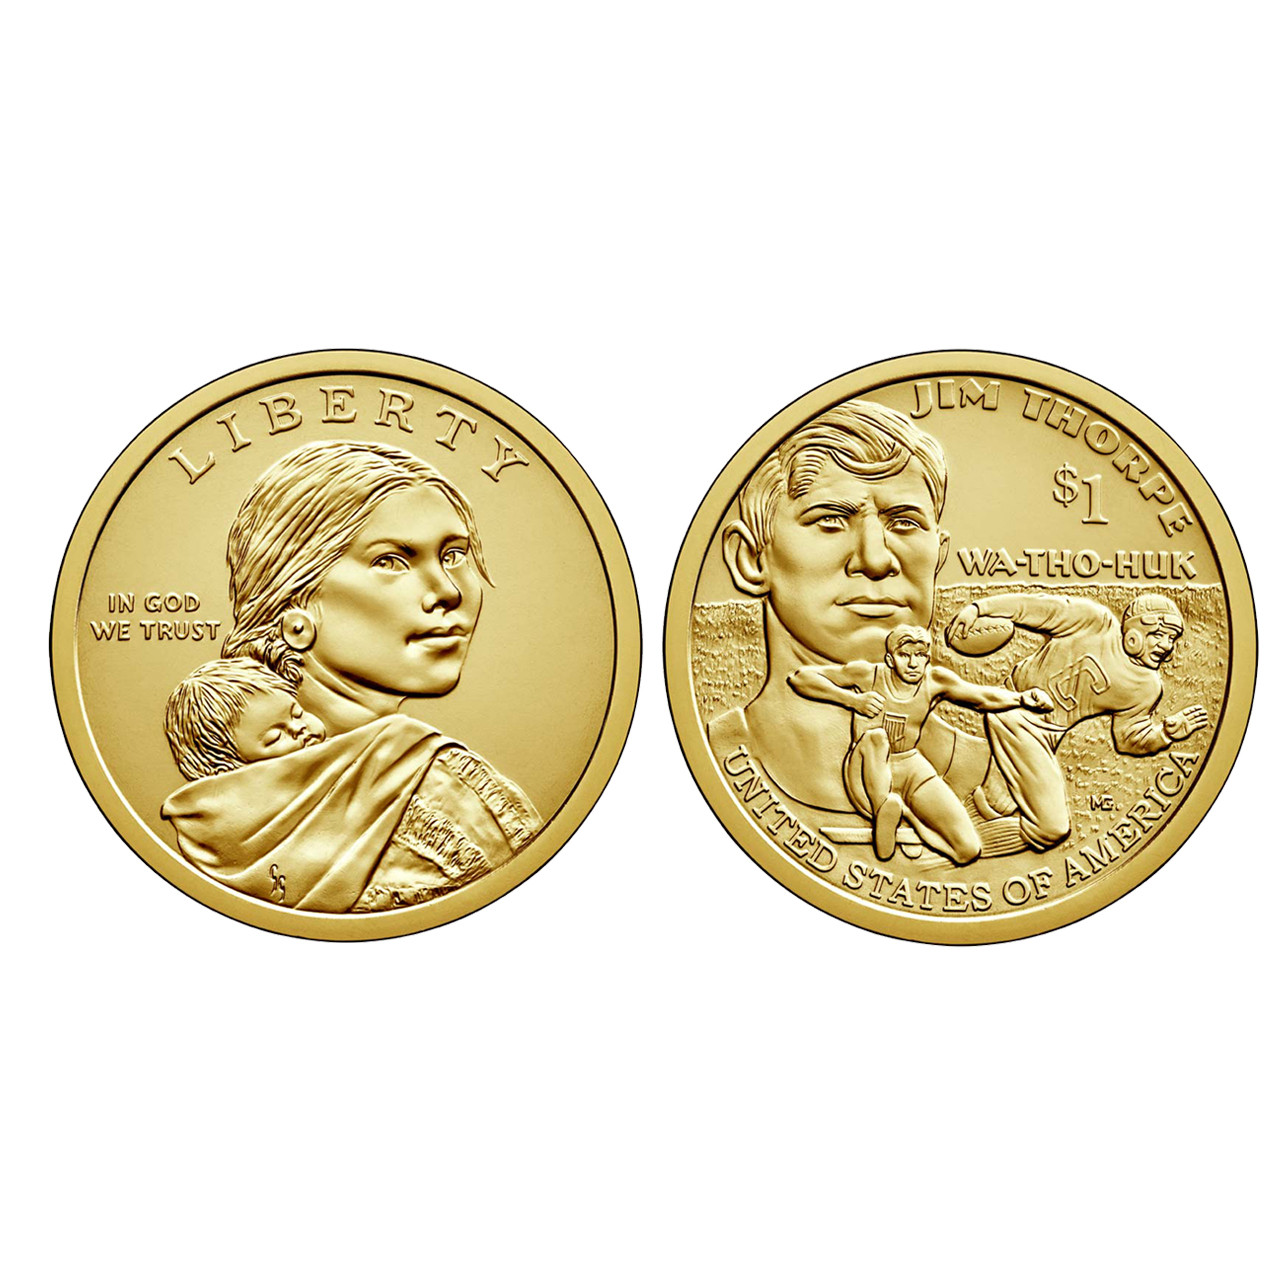 2007 P /& D $1 Sacagawea Native American Dollar 2 Coin Set From Mint Rolls